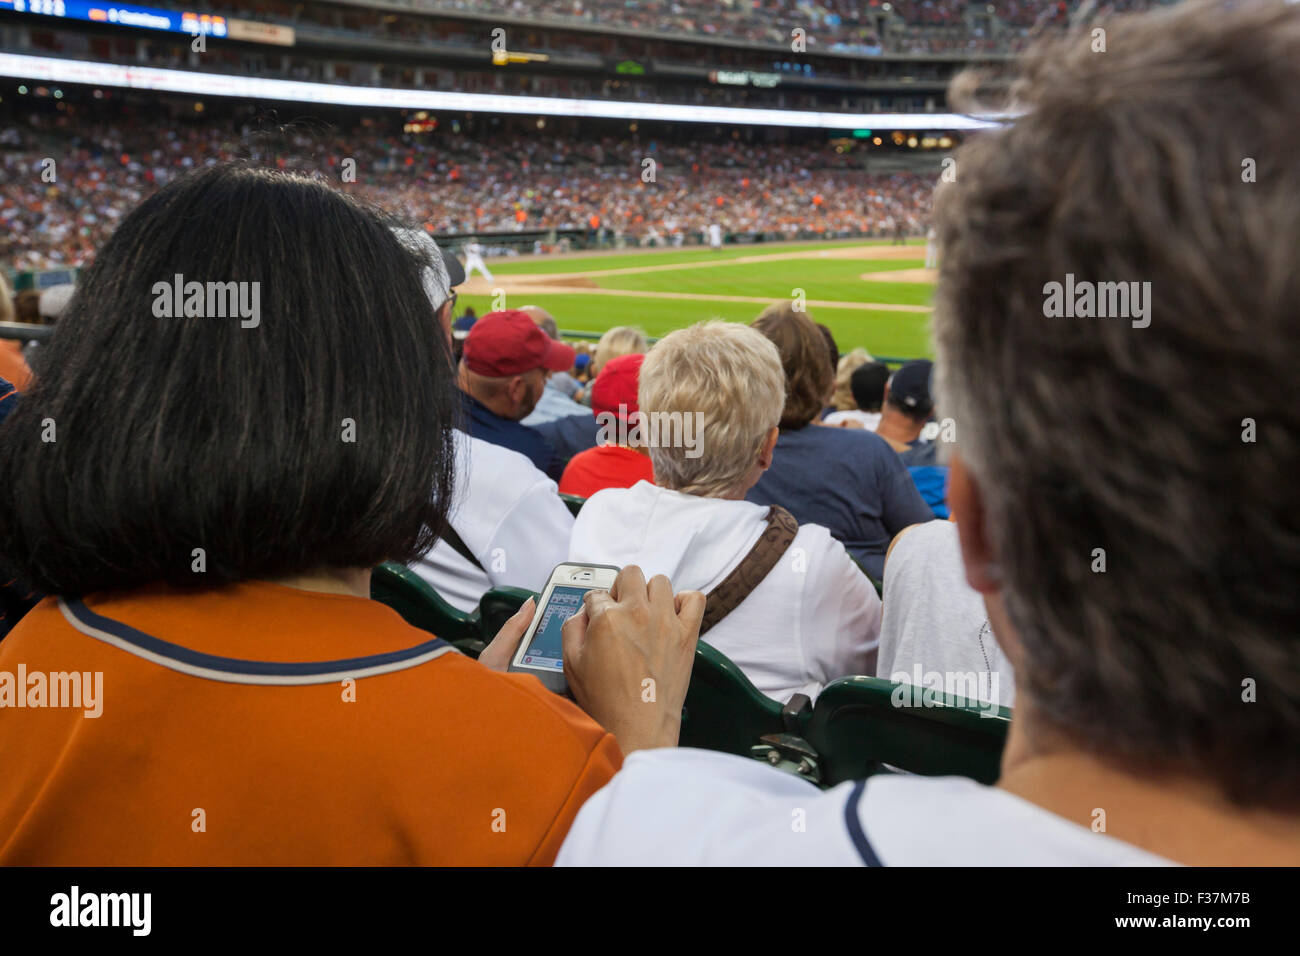 Detroit, Michigan - A woman plays solitaire on her phone at Comerica Park during a baseball game. - Stock Image